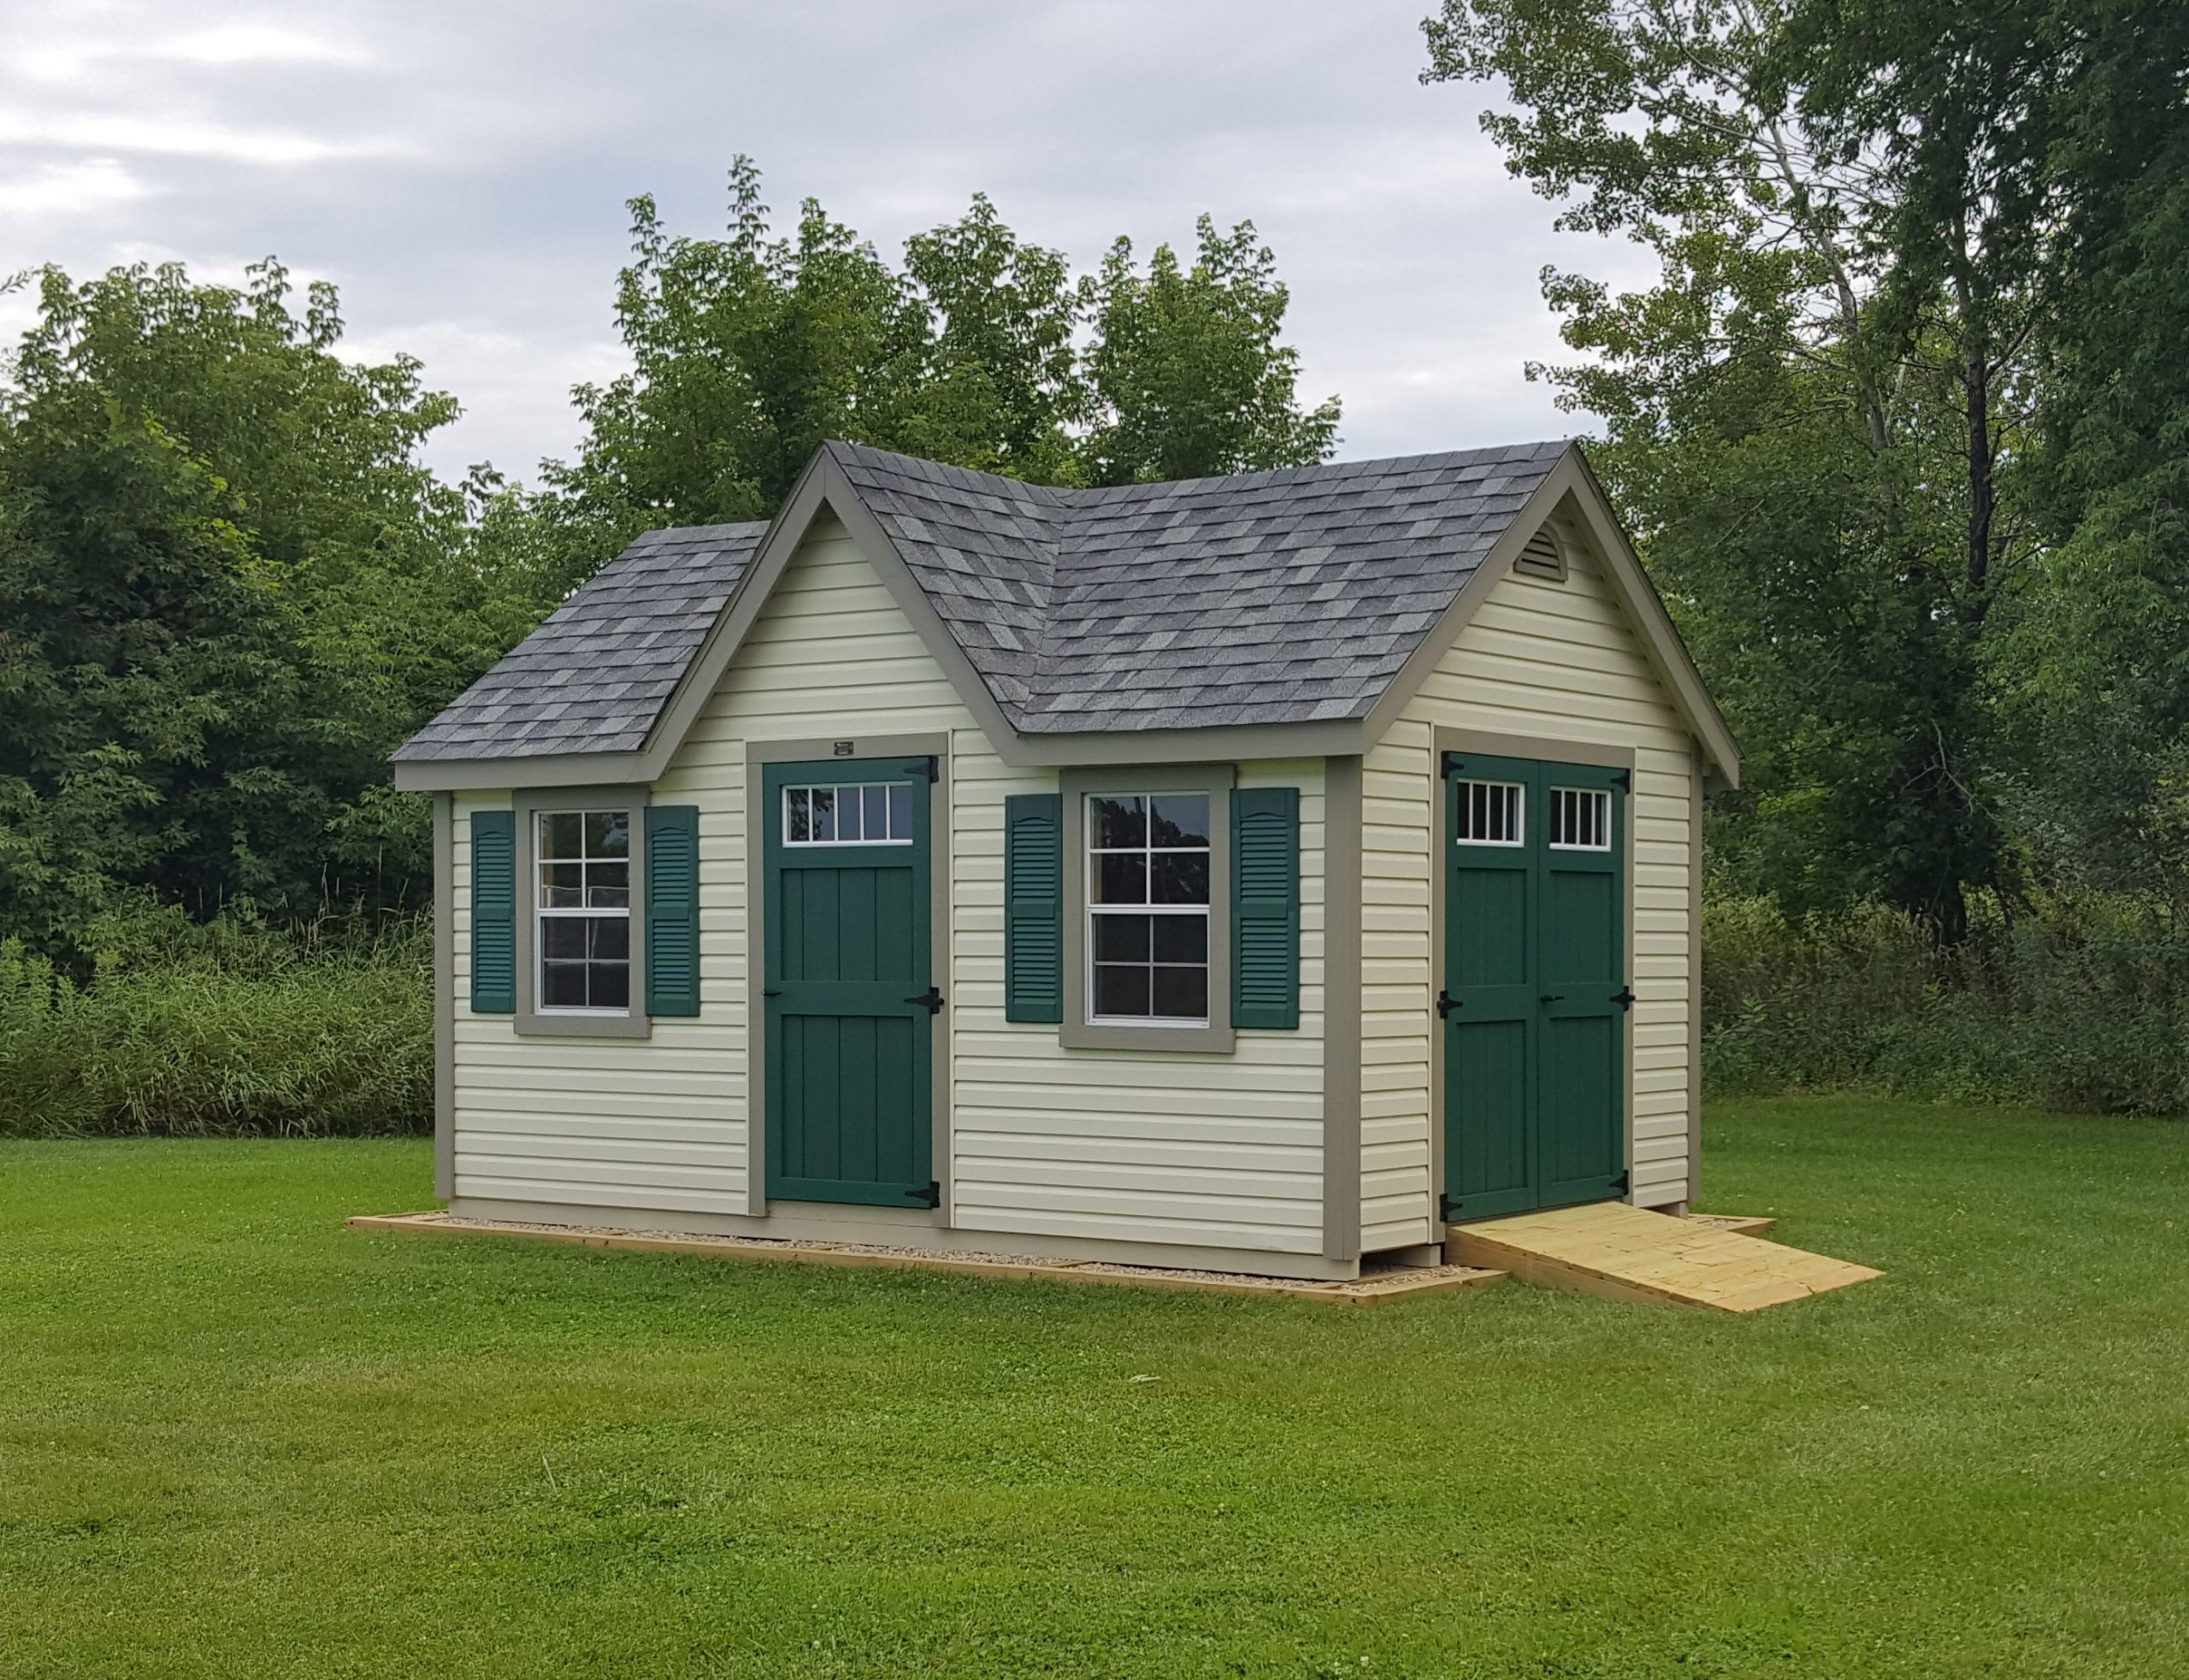 your guide to shopping for and purchasing storage sheds from a quality shed company